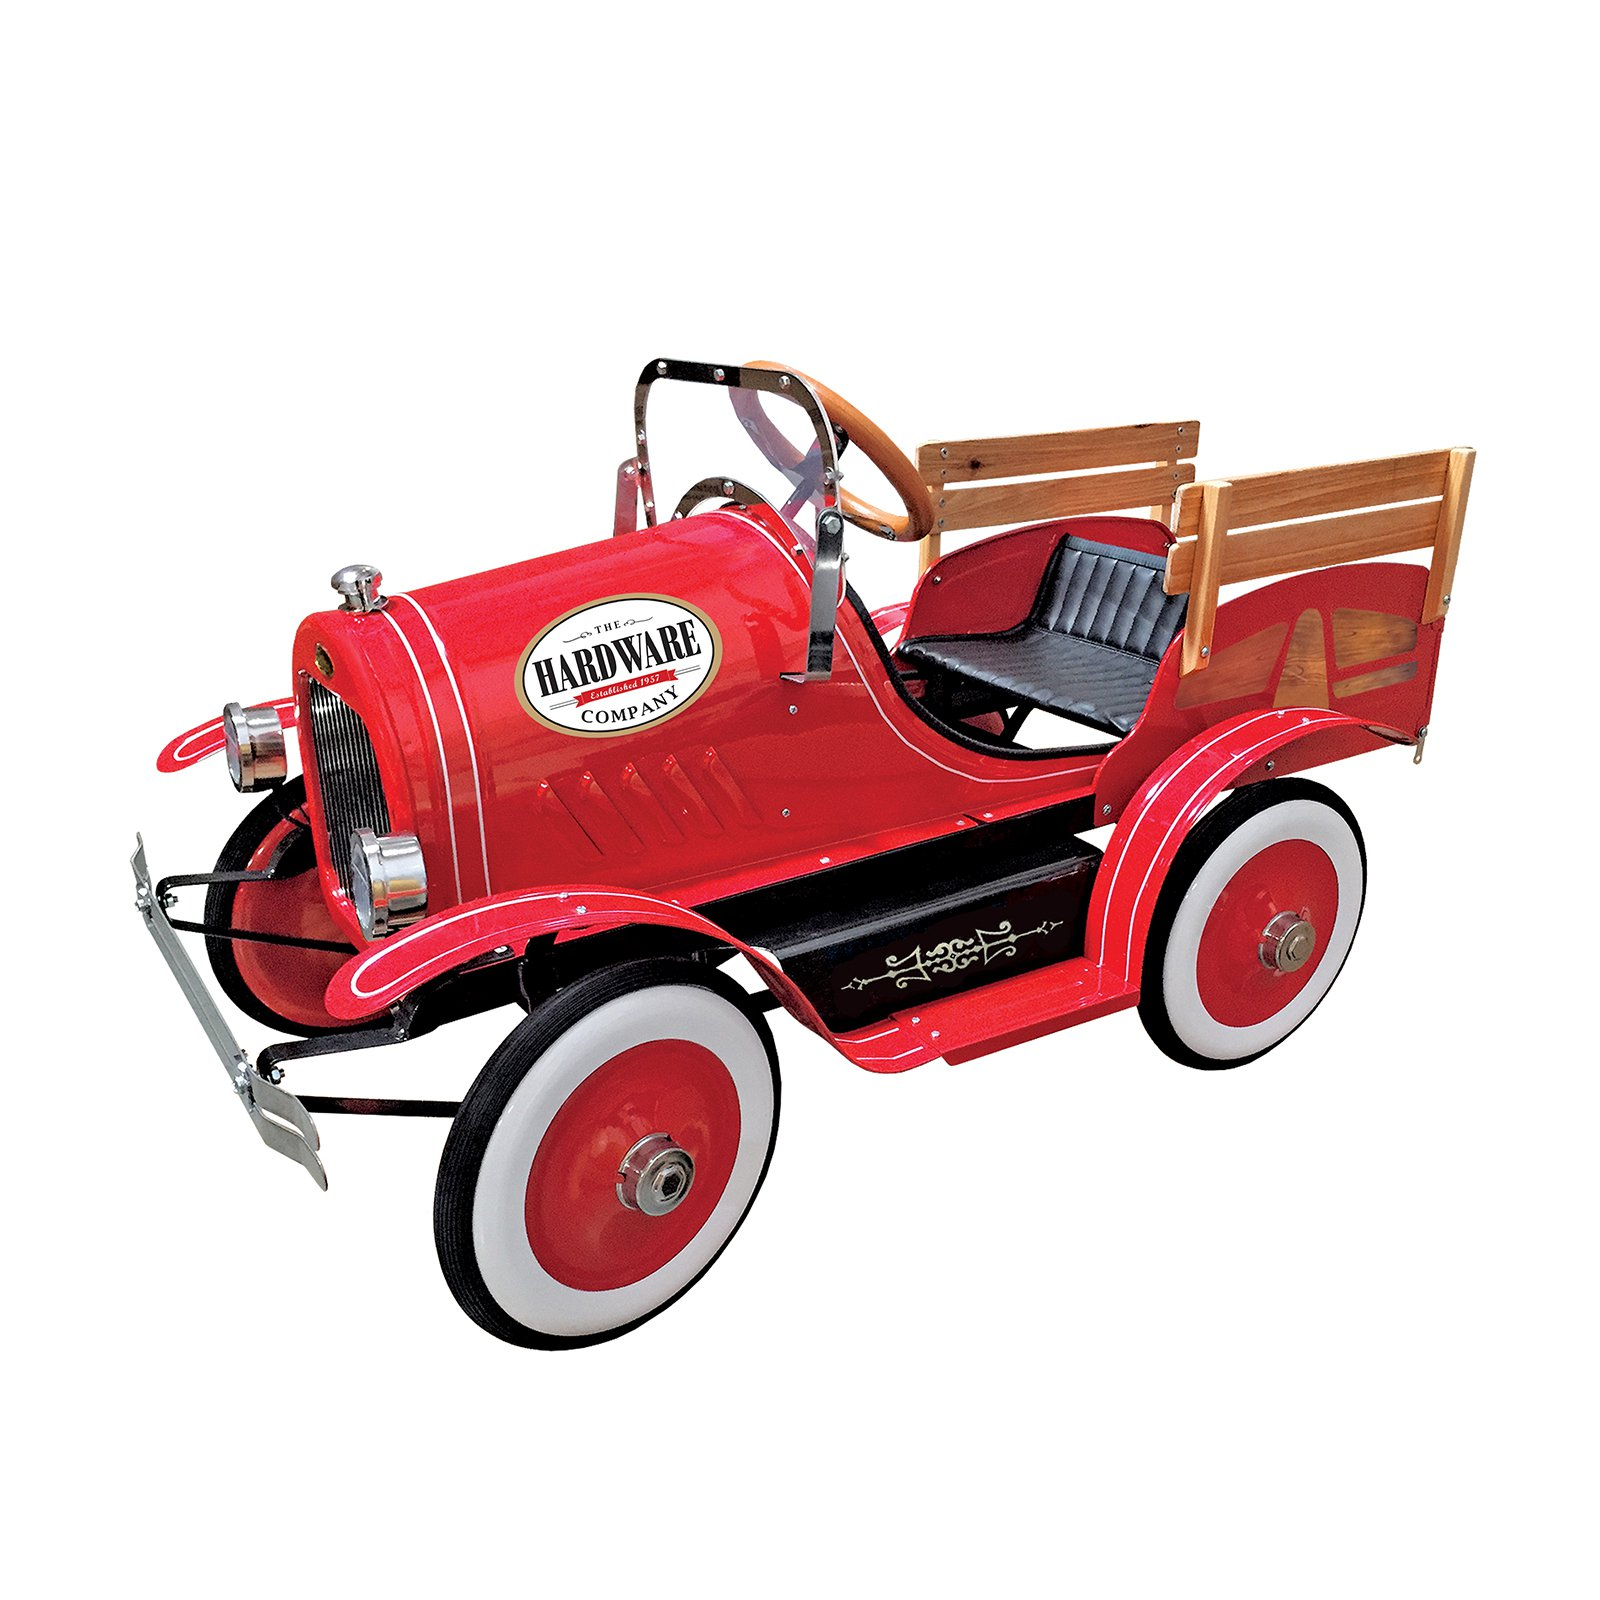 Dexton Kids Deluxe Vintage Delivery Truck Roadster Pedal Car Red by Dexton Kids